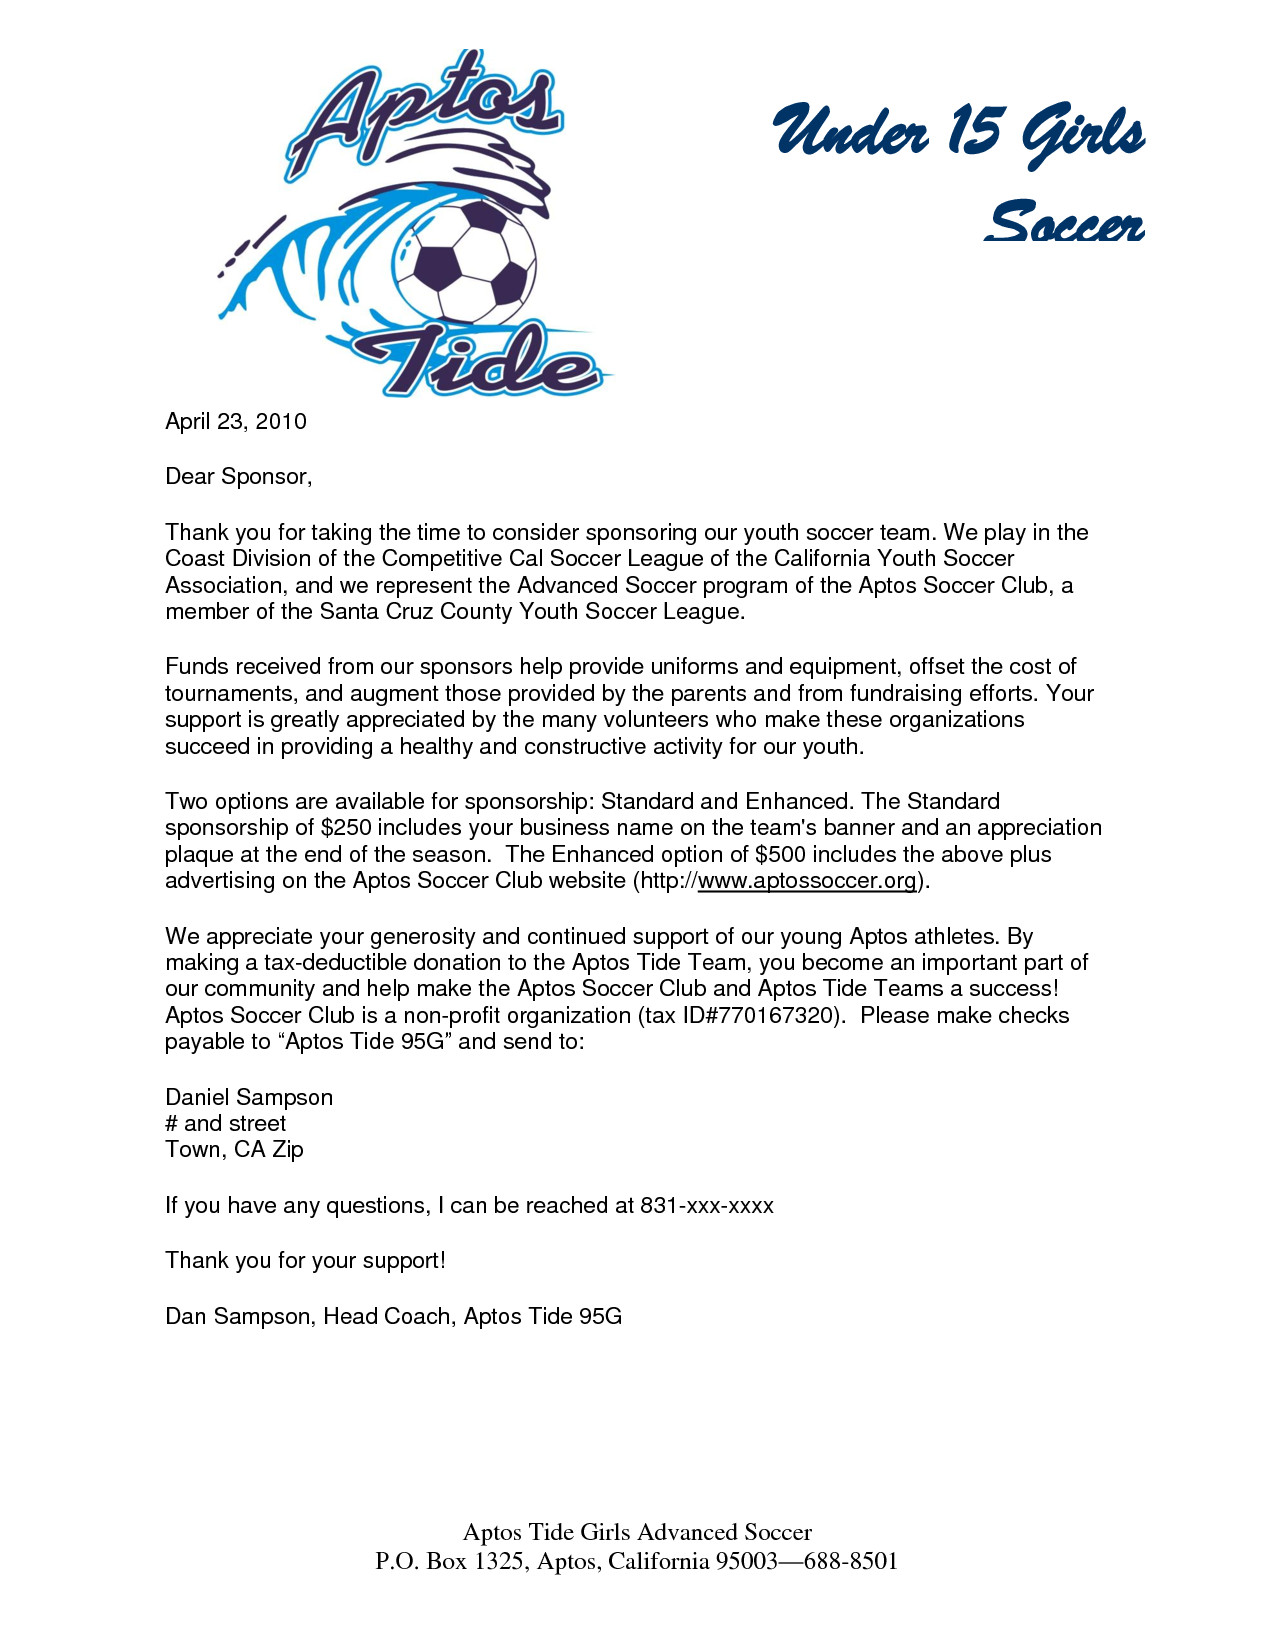 Sponsorship form for Sports Team Parent Thank You Letter From Youth athletes